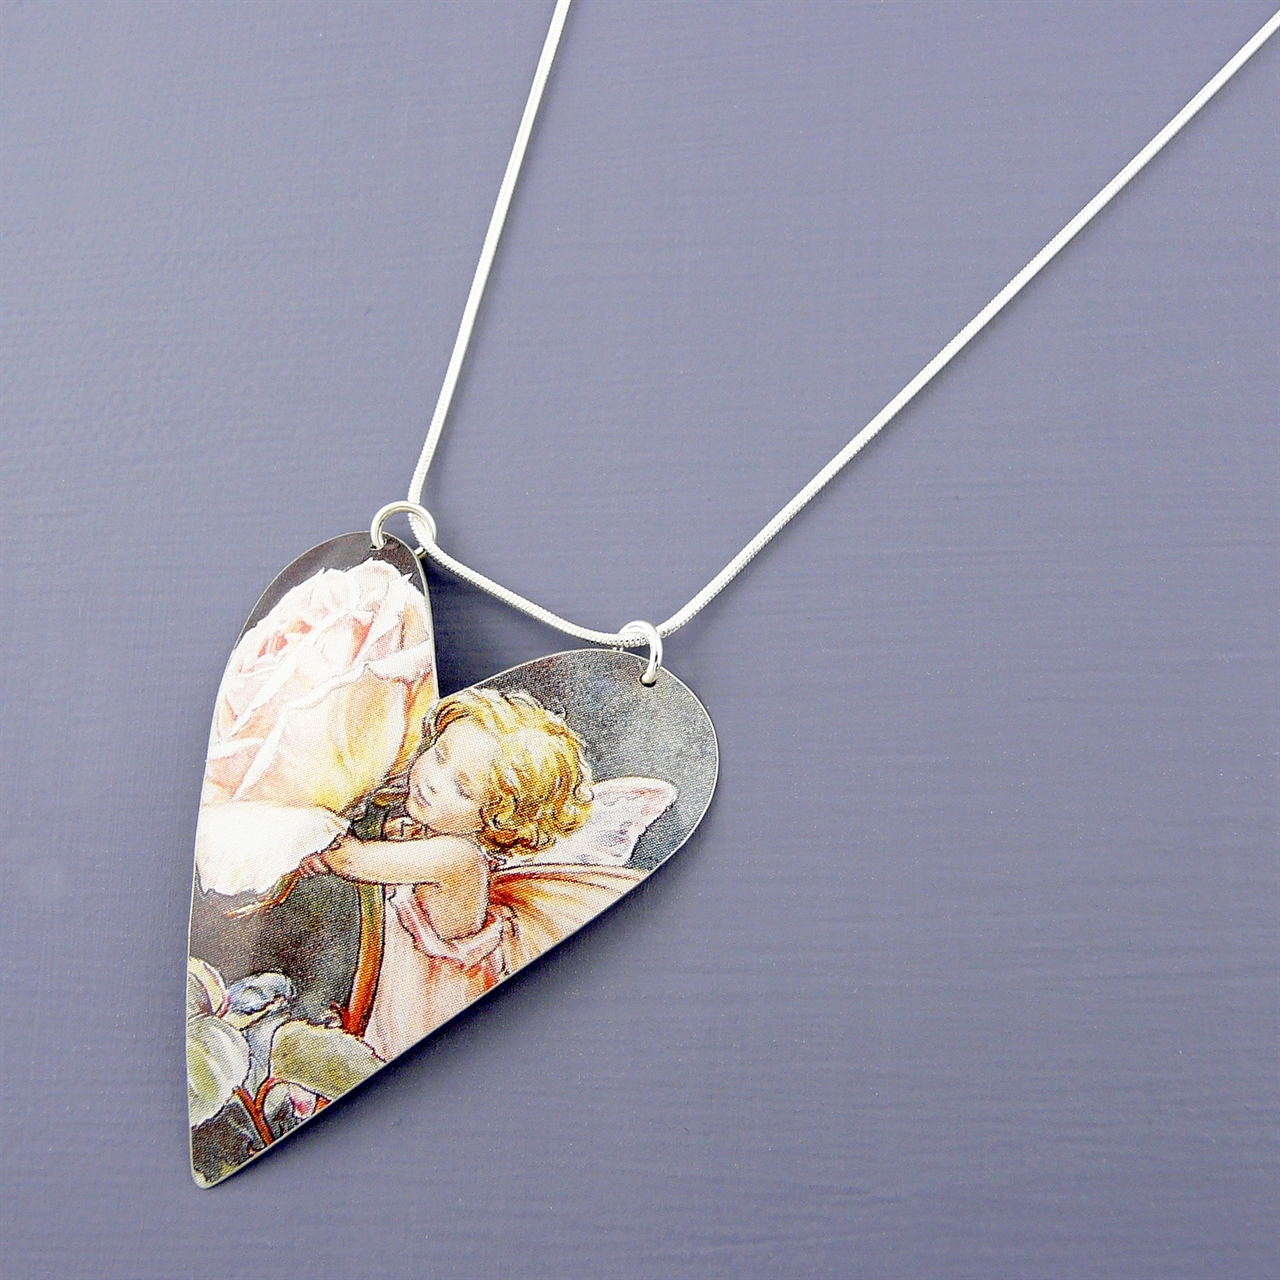 Fairy large heart necklace handmade jewellery by kate hamilton picture of fairy large heart necklace mozeypictures Choice Image